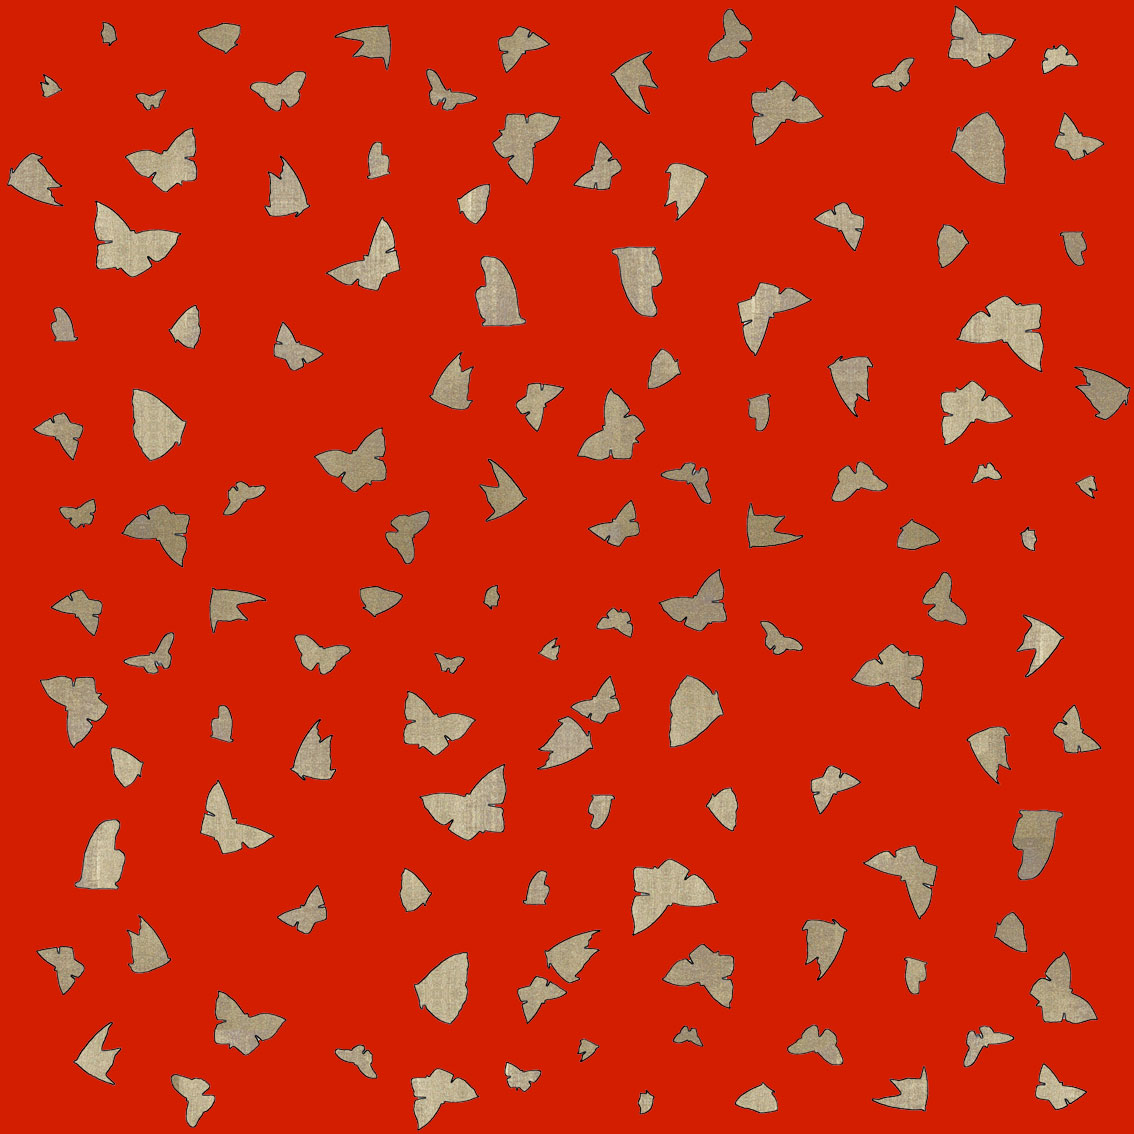 Golden Butterflies on Chinese Red divers Thierry Bisch Contemporary painter animals painting art decoration nature biodiversity conservation